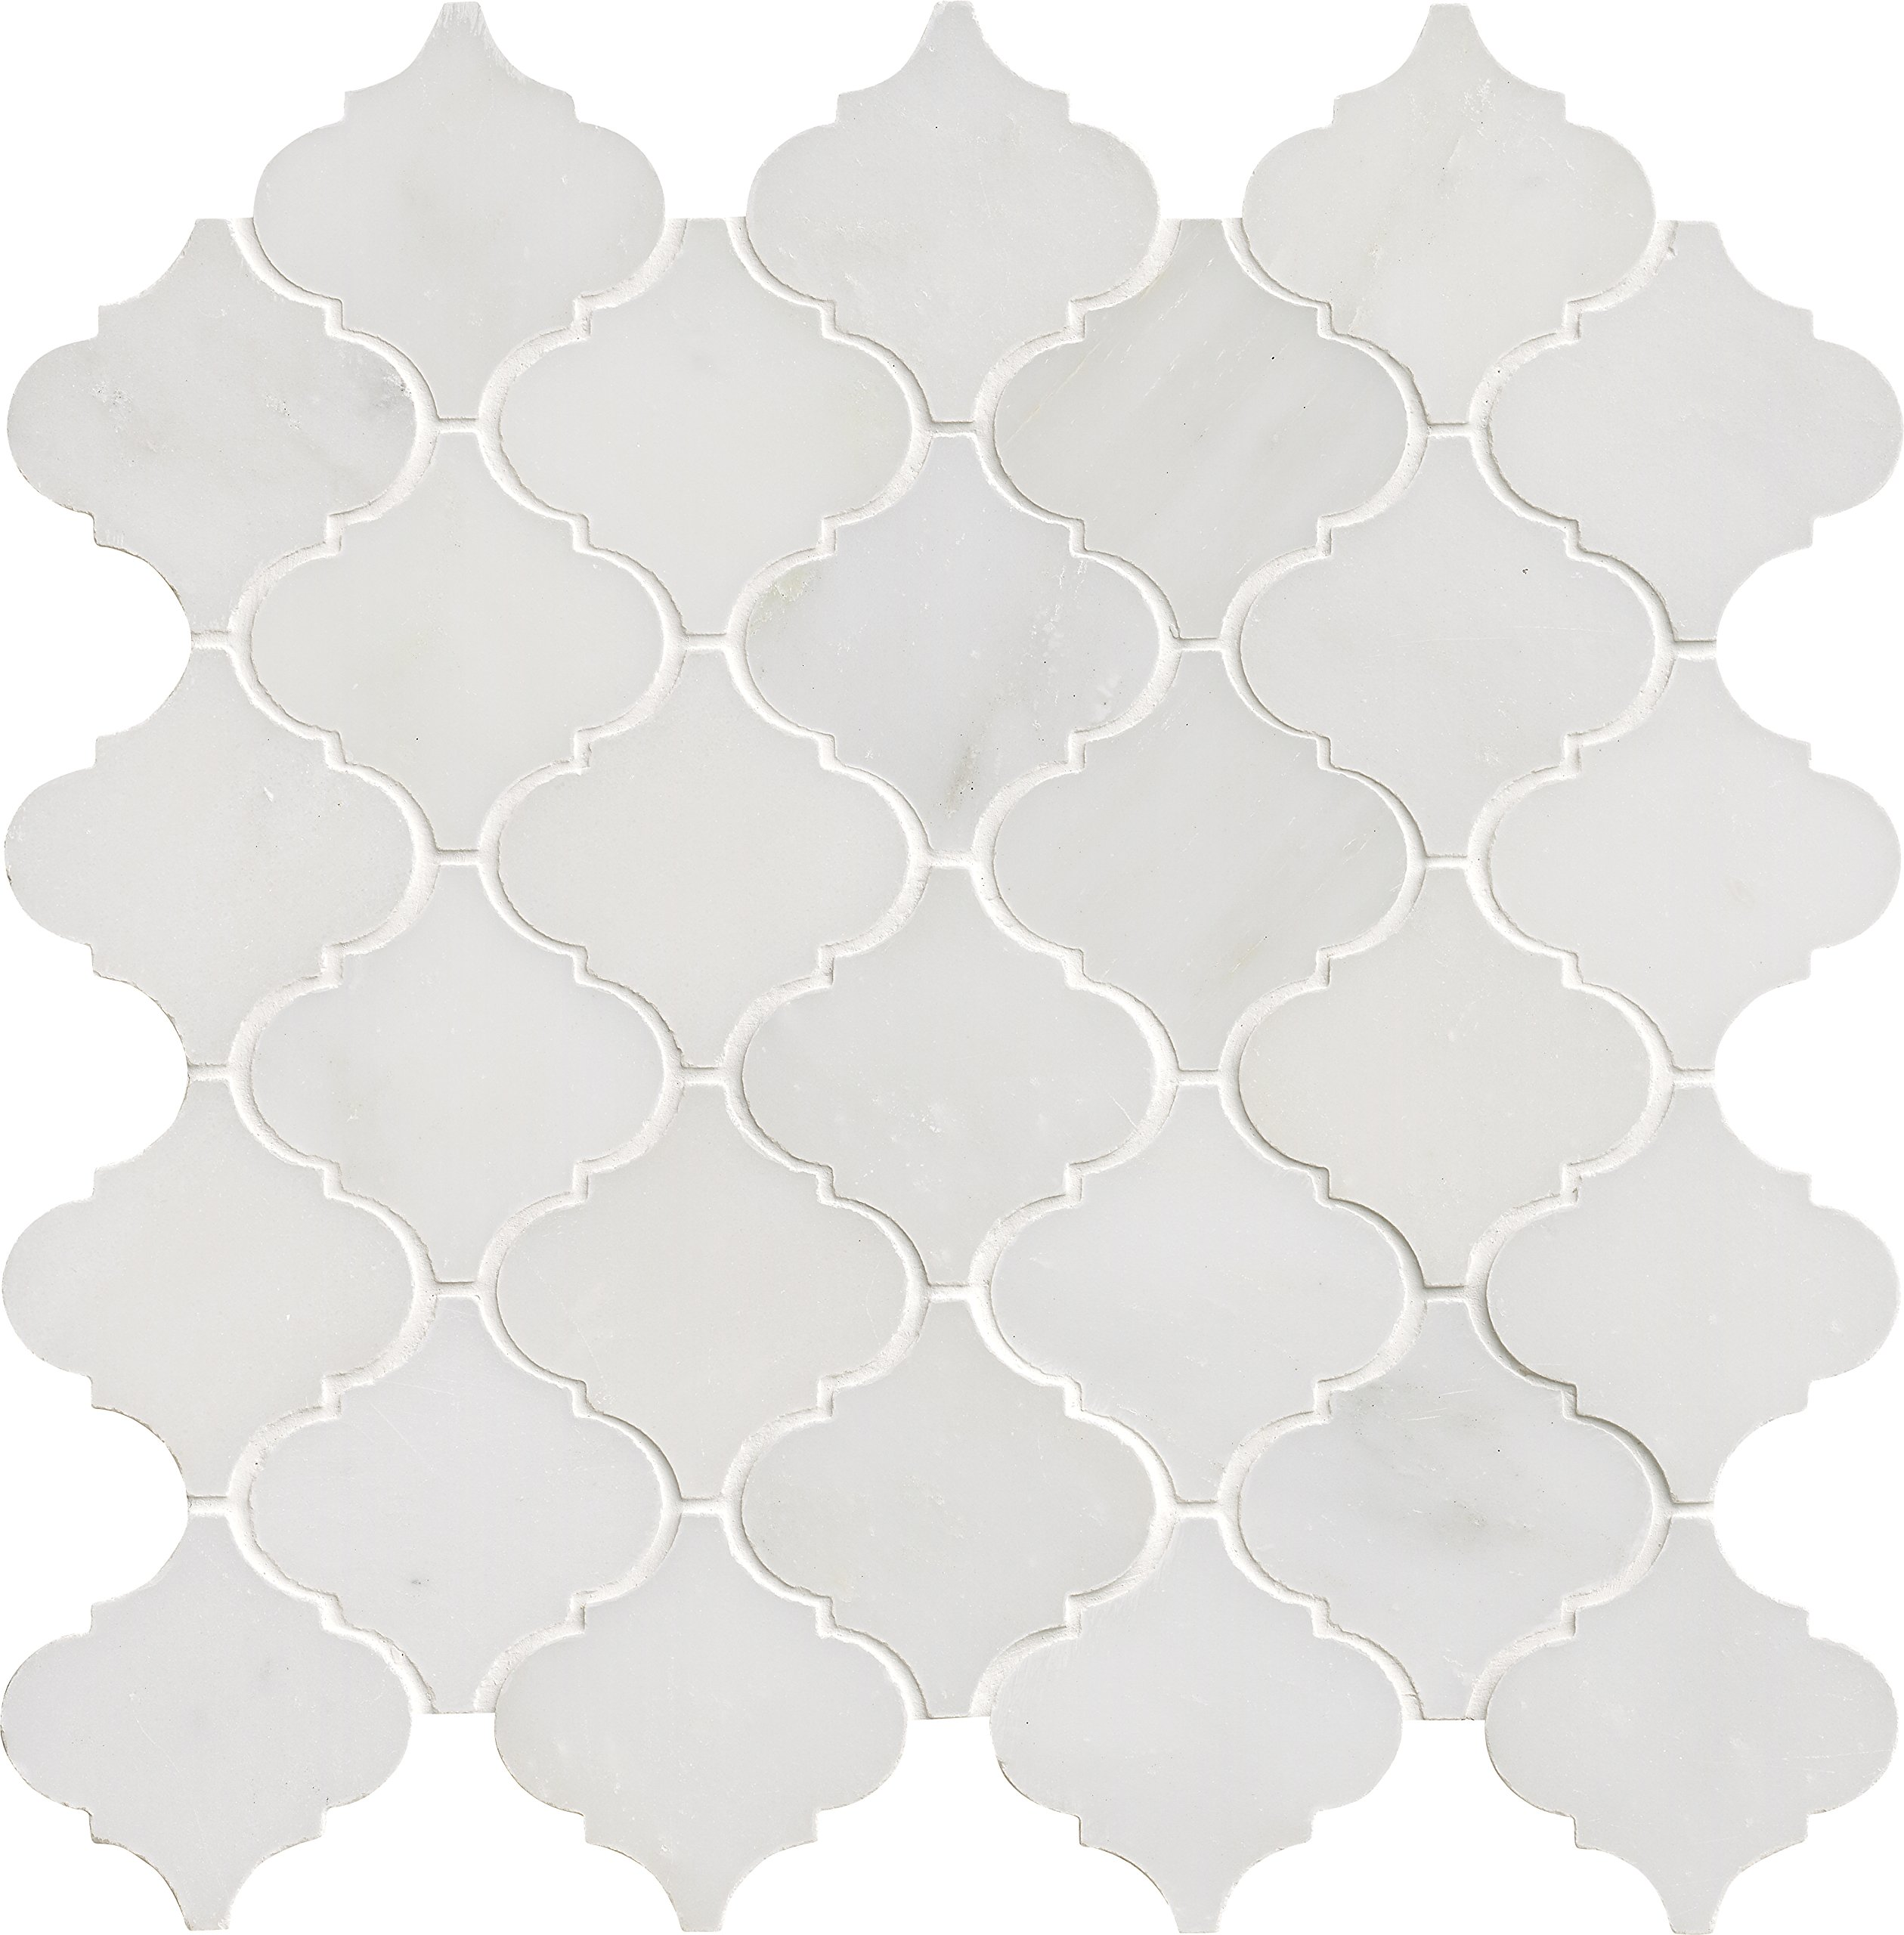 M S International Arabescato Carrara Arabesque 12 In. X 12 In. X 10 mm Polished Marble Mesh-Mounted Mosaic Floor And Wall Tile, (10 sq. ft., 10 pieces per case), White